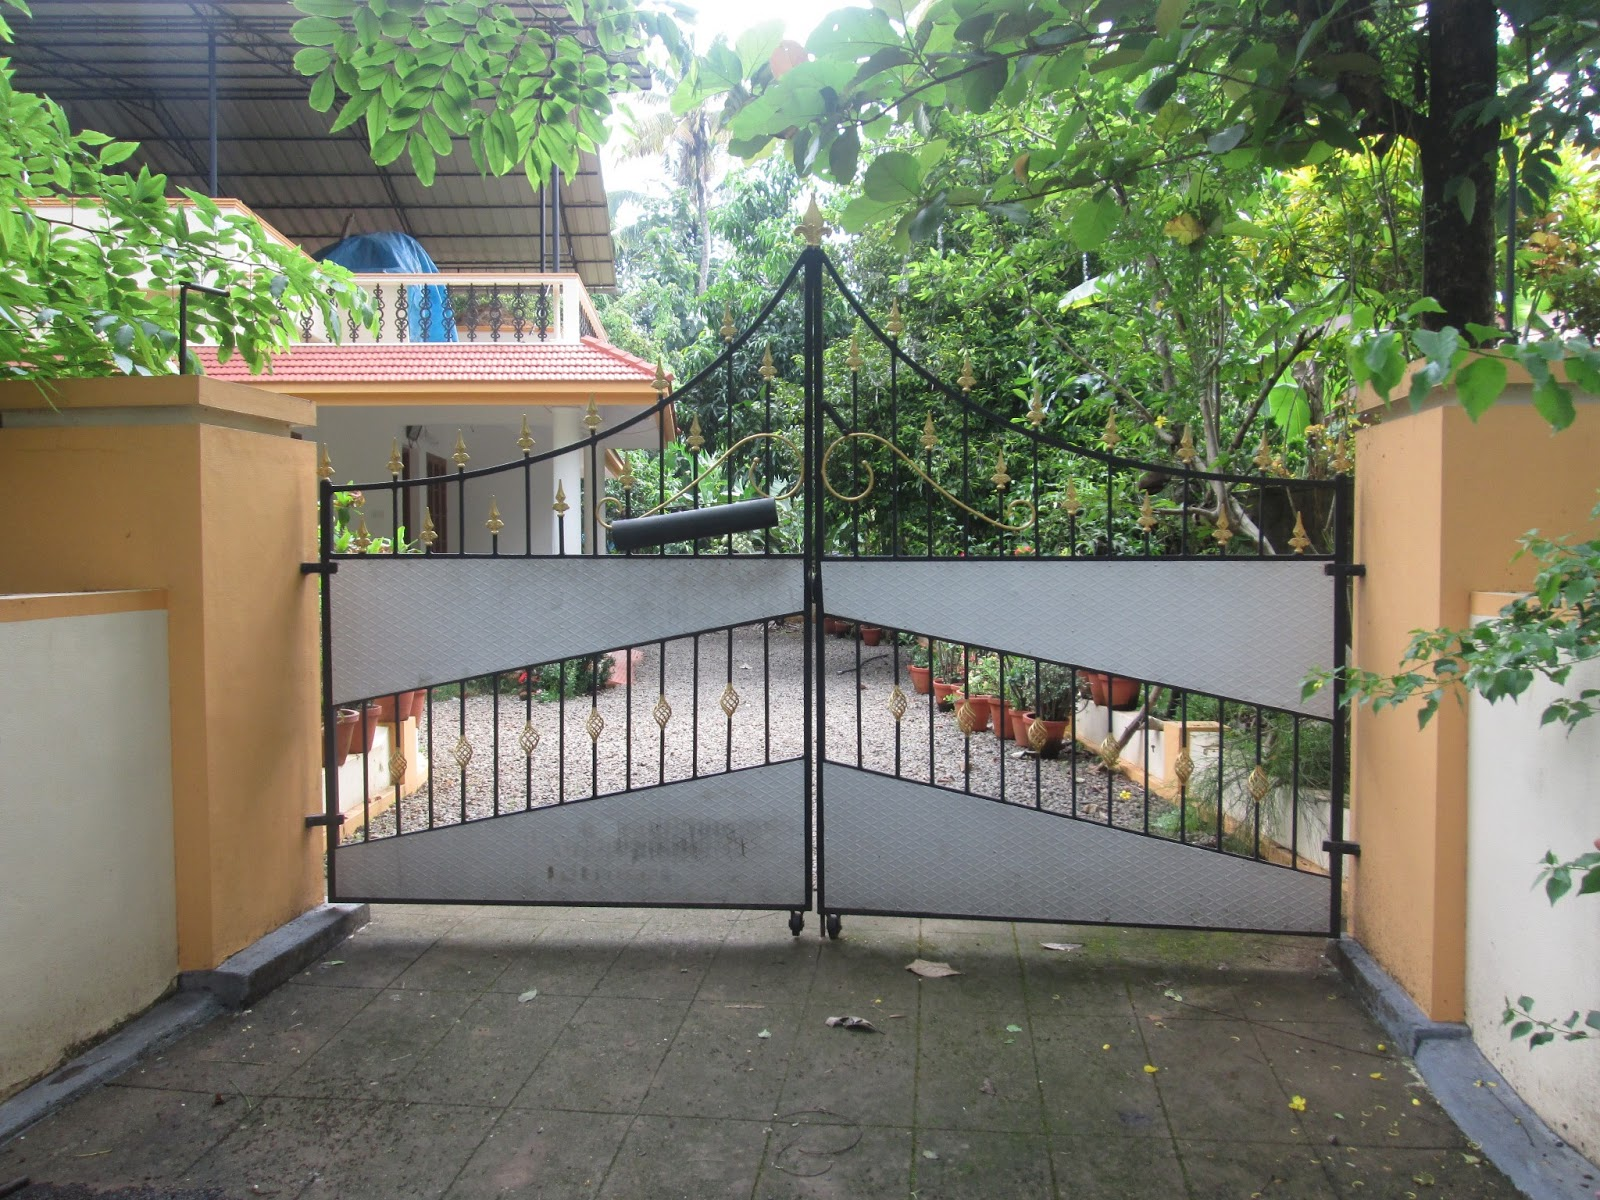 IMG 1034 - 37+ Small House Basic Simple Gate Design Pictures